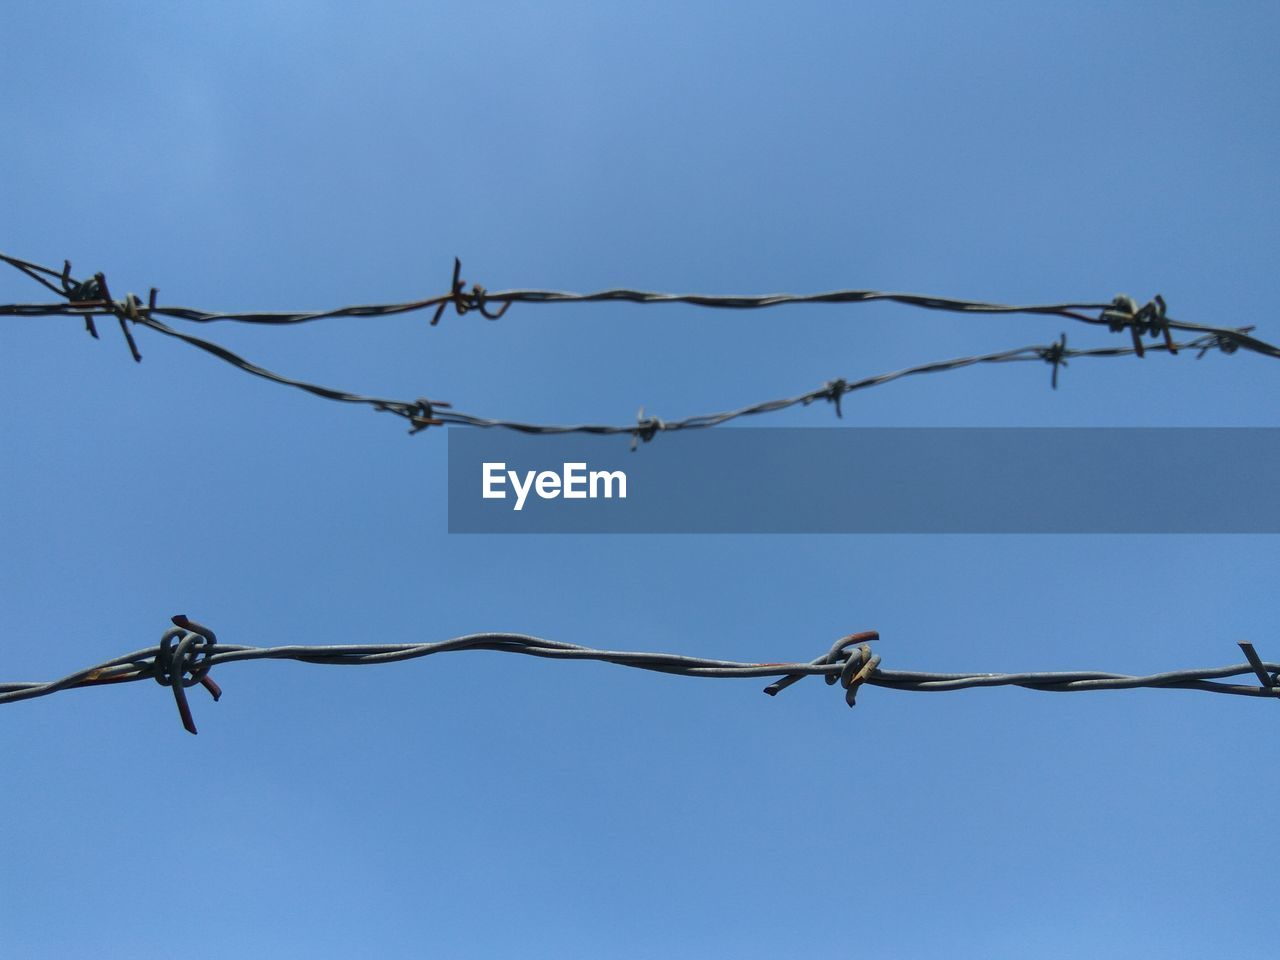 protection, safety, security, fence, wire, sky, barbed wire, metal, barrier, boundary, sharp, low angle view, nature, no people, day, blue, close-up, clear sky, outdoors, focus on foreground